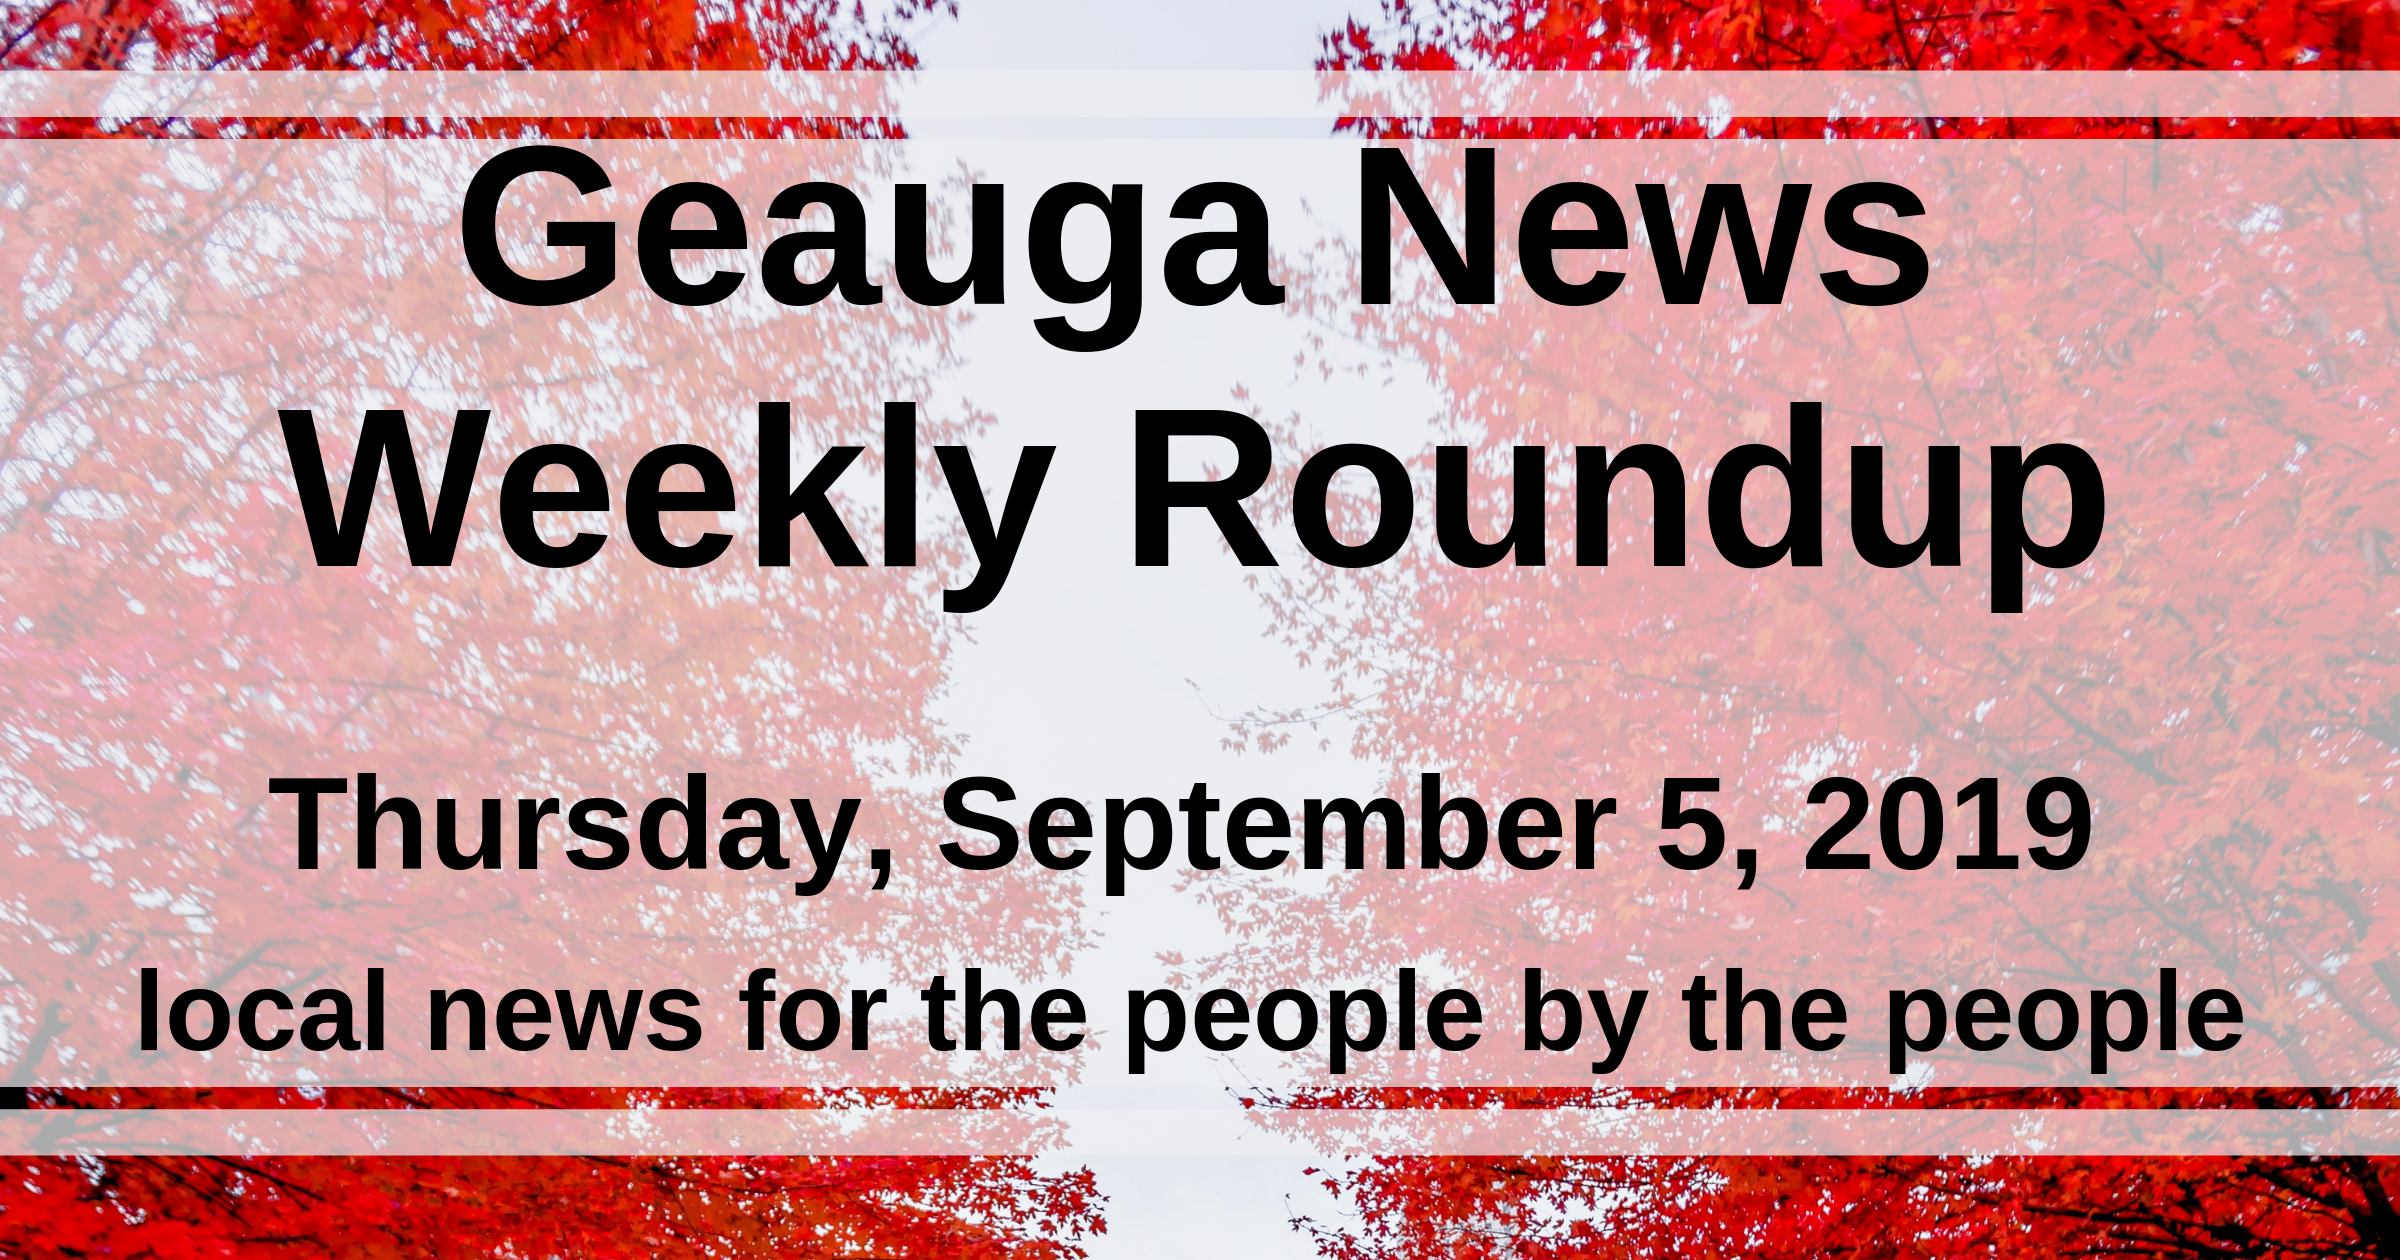 Geauga News - local news for the people by the people